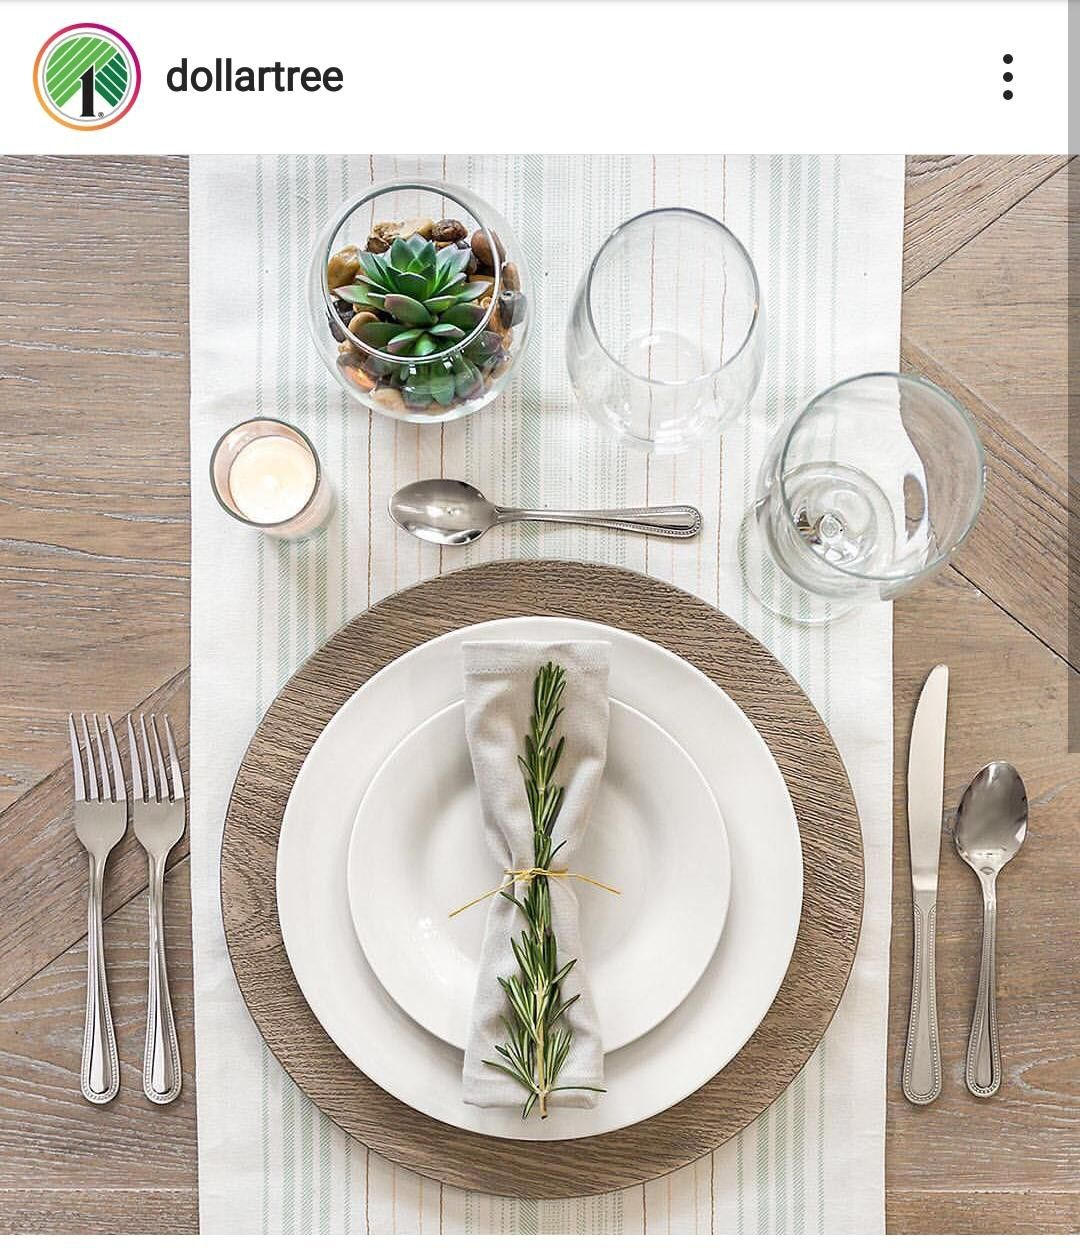 Faux Wood Chargers From Dollar Tree Dinner Table Setting